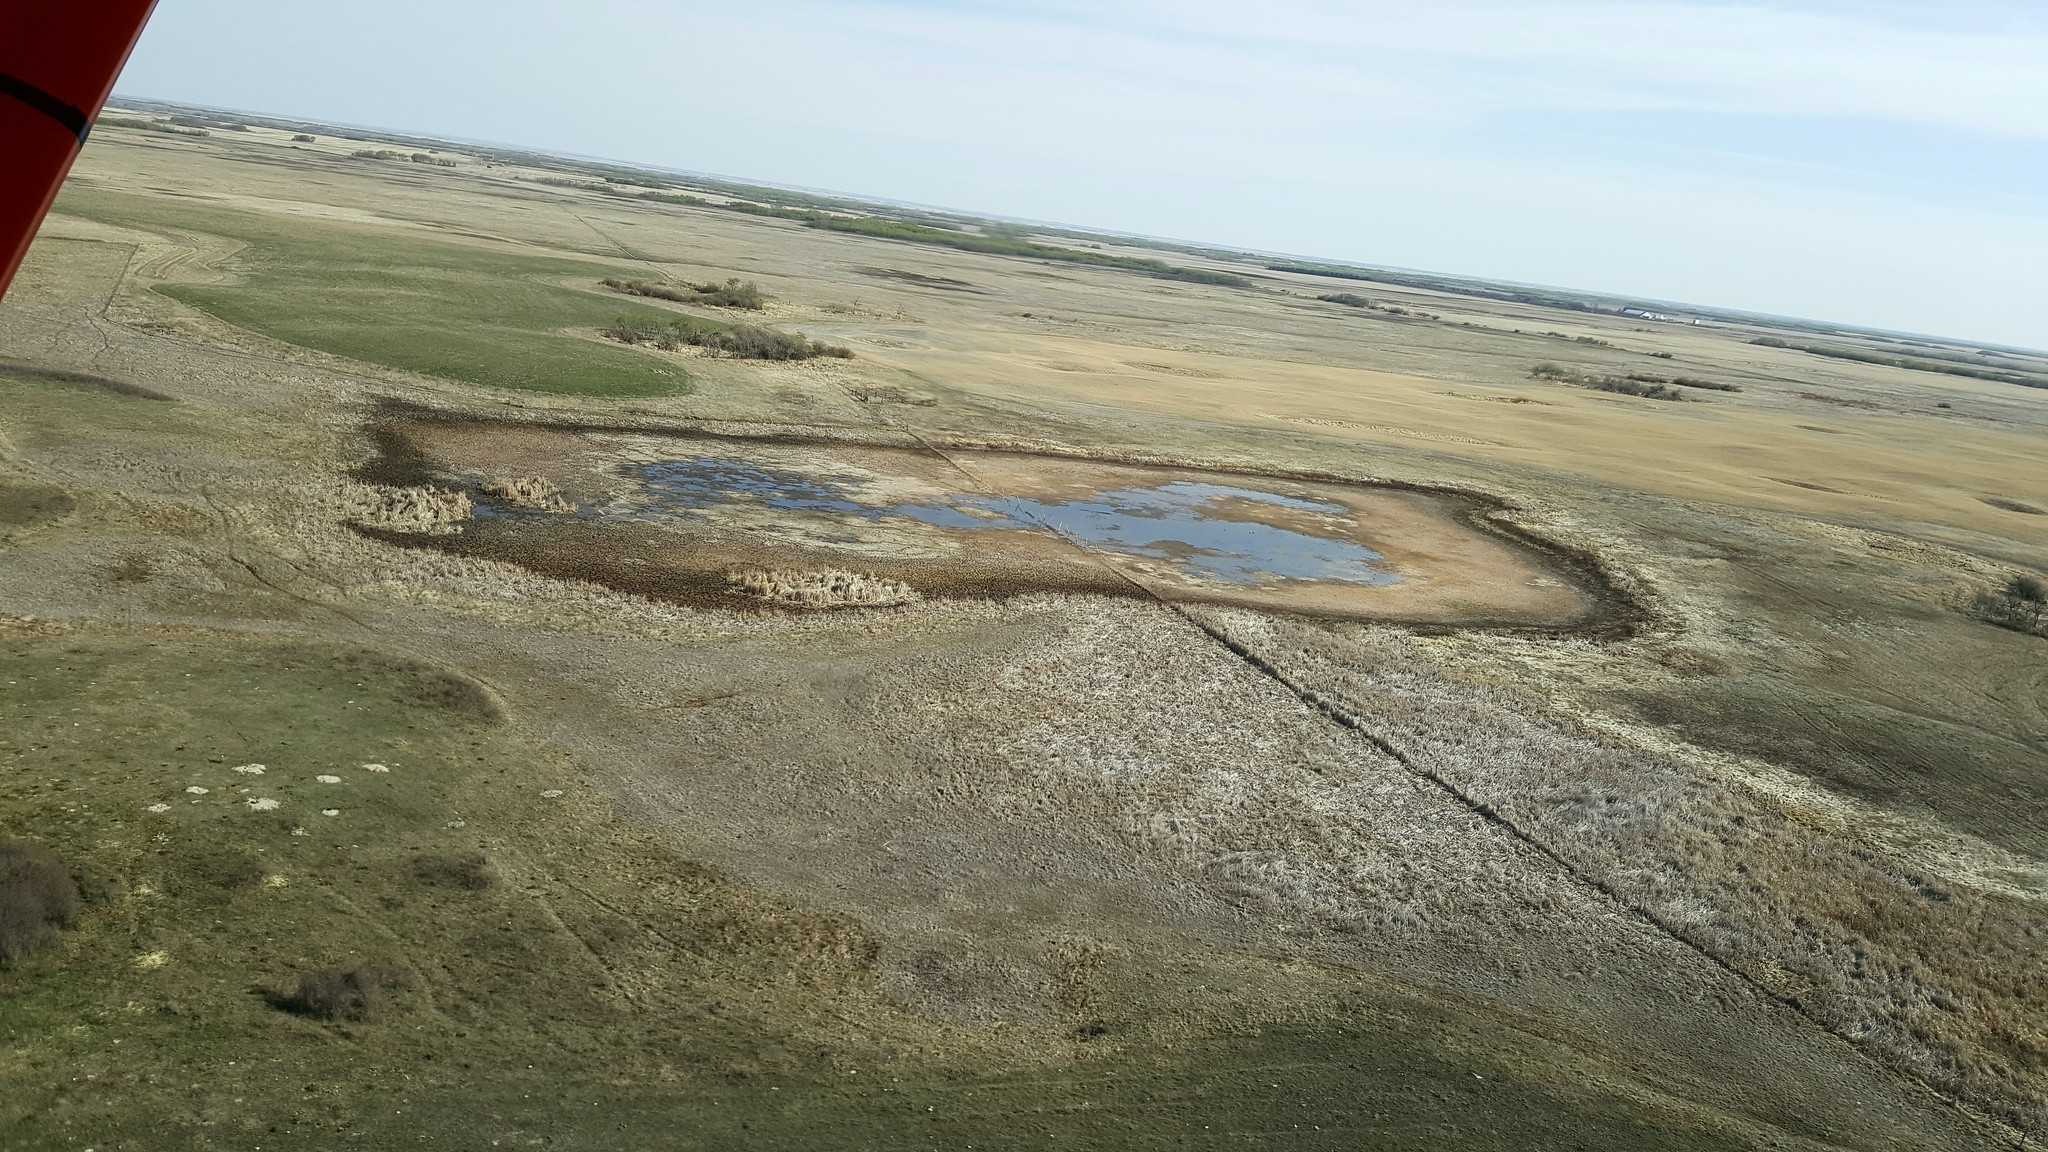 This semi-permanent to the west of Moose Mountain will be dry in a few weeks without some substantial rain events. Photo Credit: Jeff Drahota, USFWS